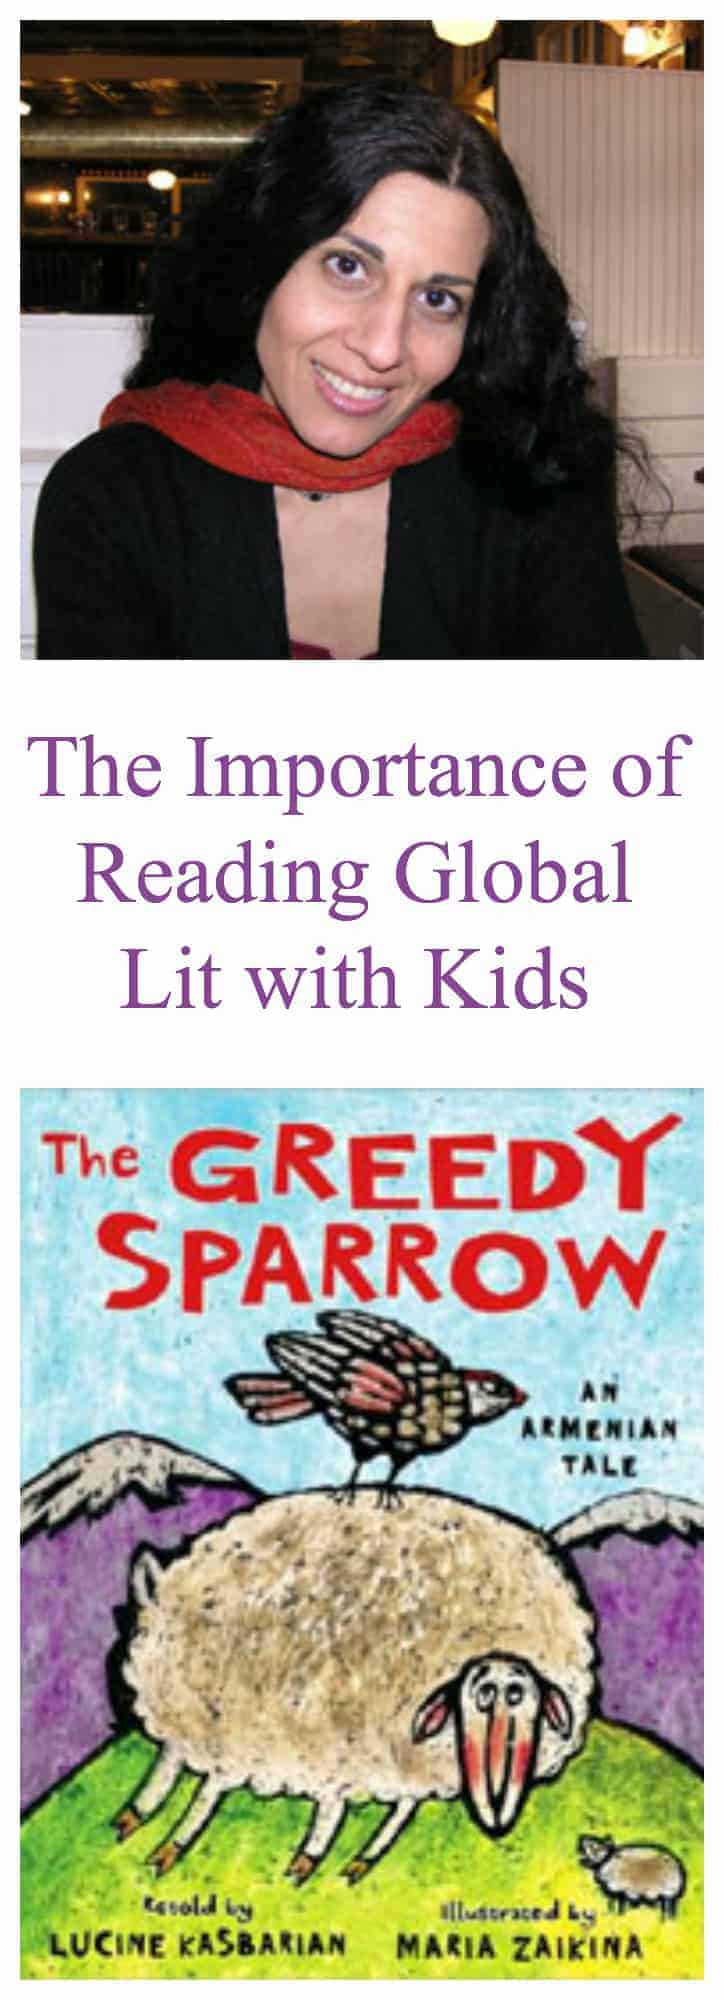 the importance of reading global literature with children